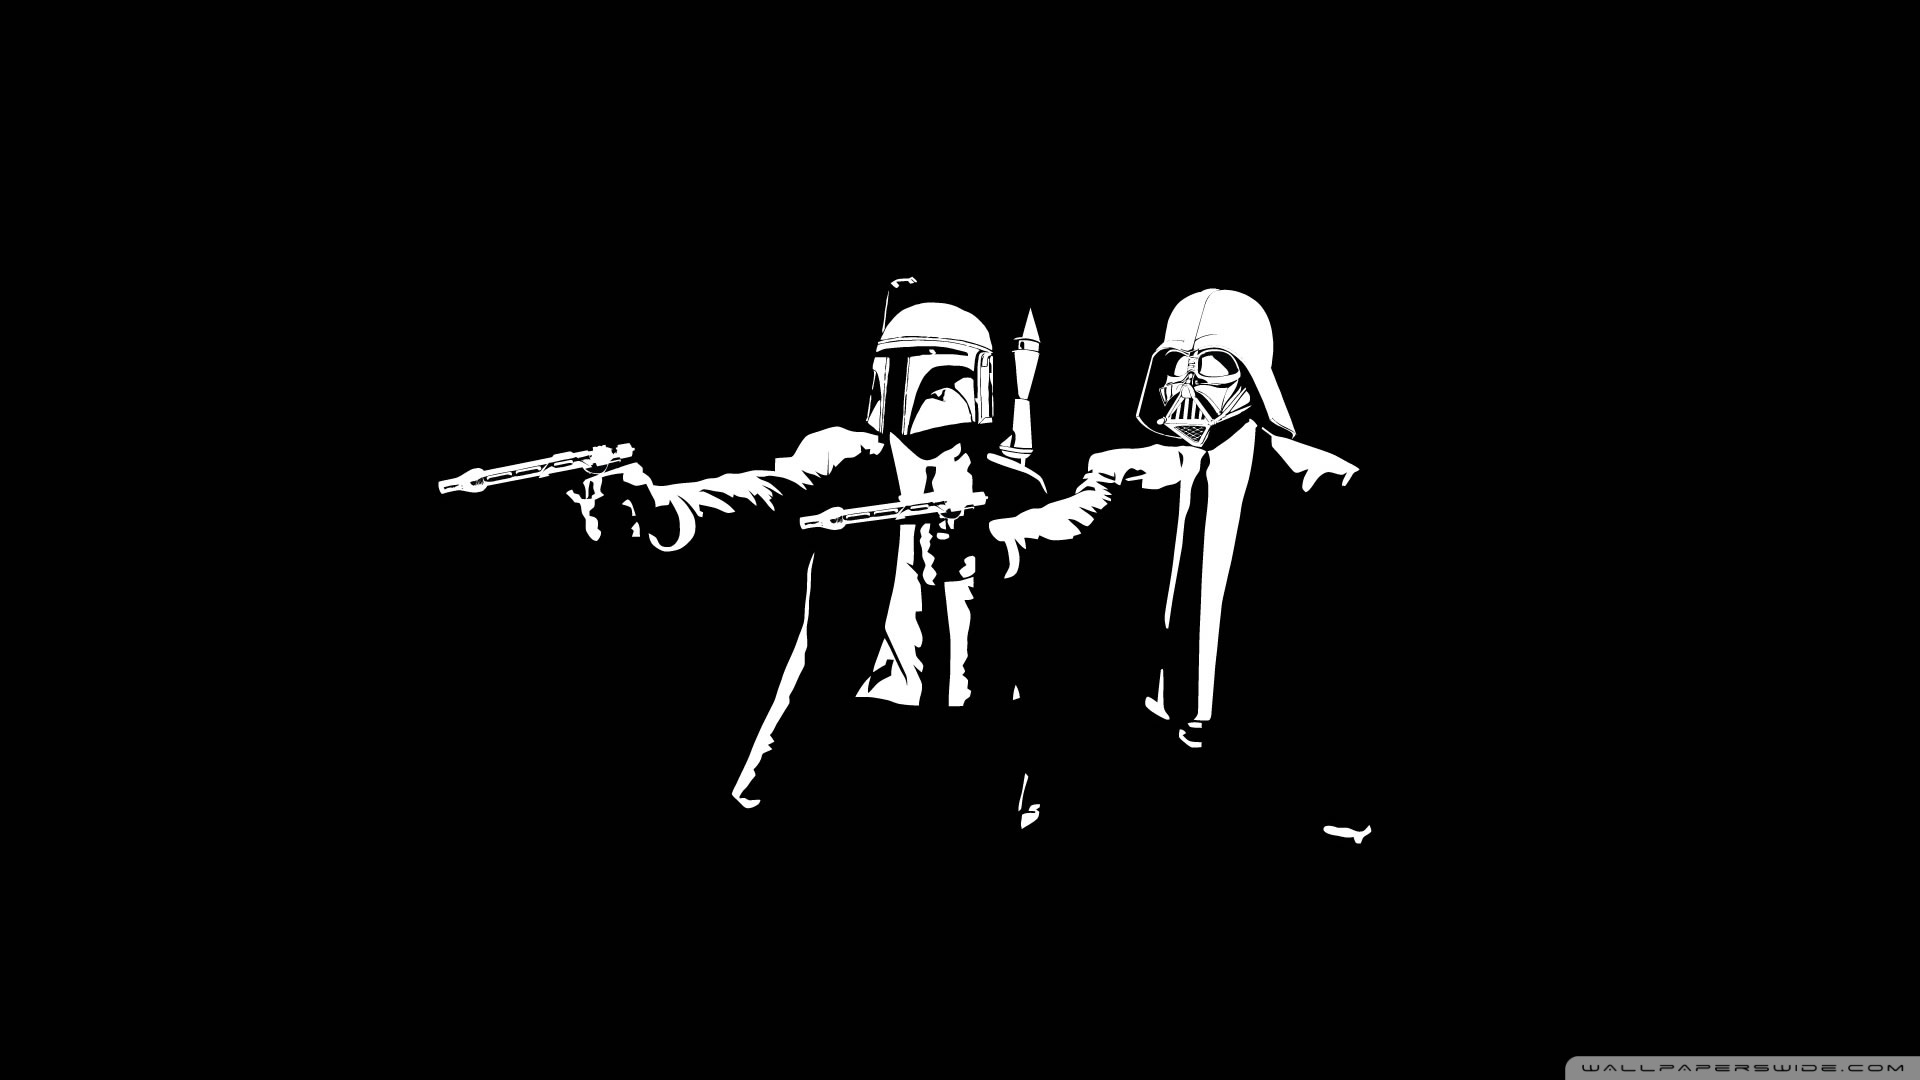 Star Wars Pulp Fiction Wallpaper